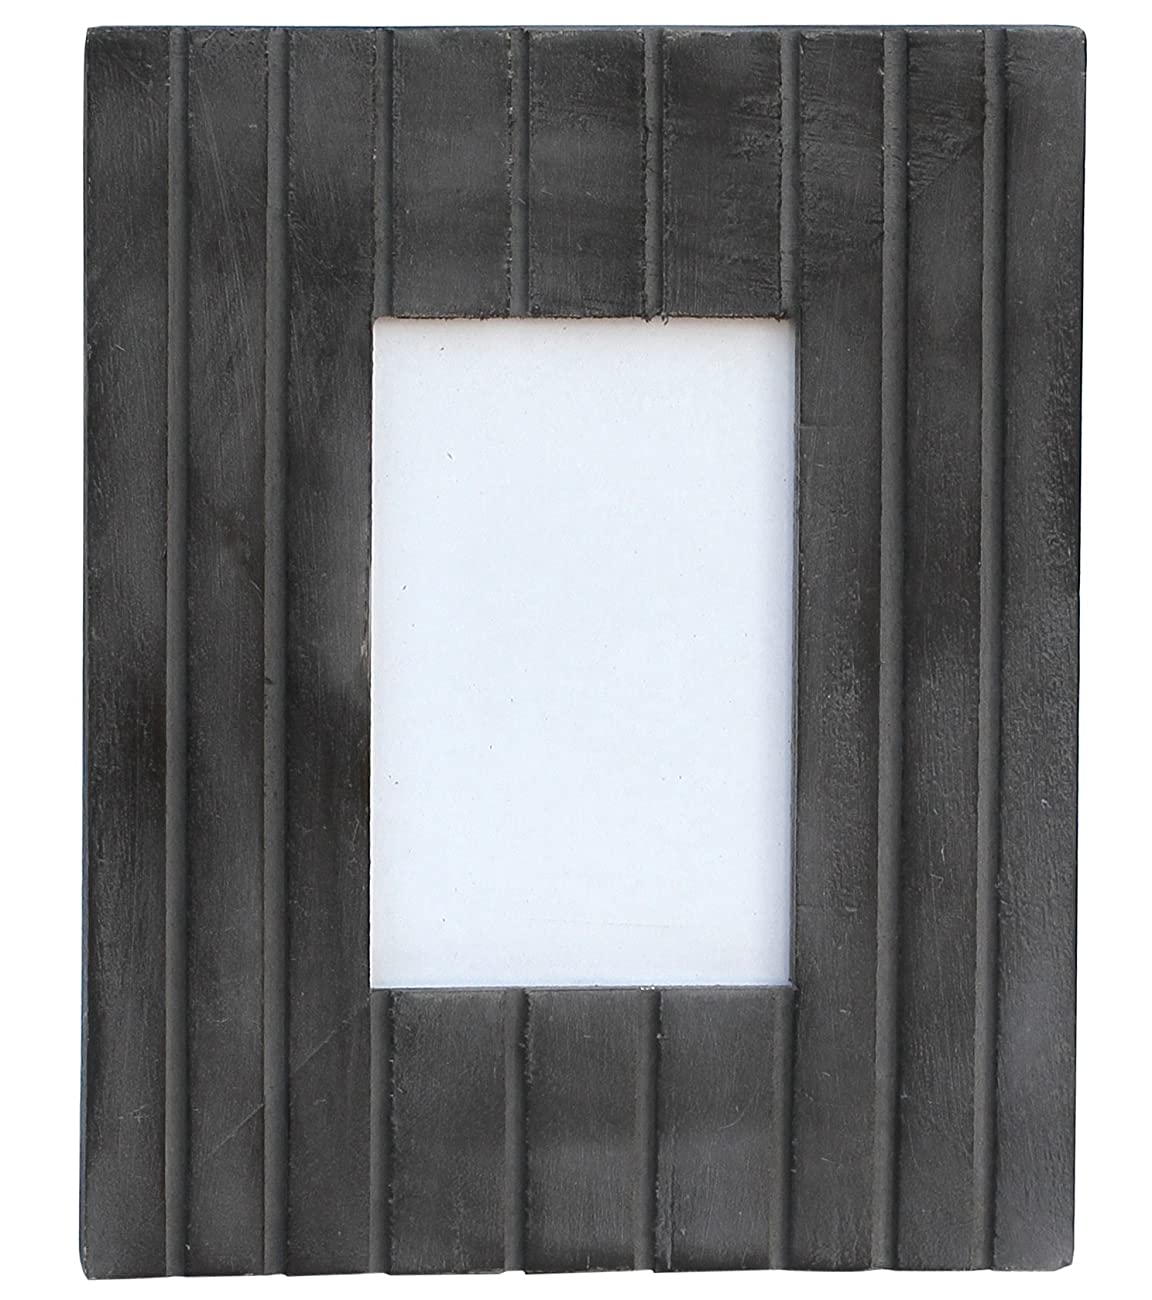 NEW YEAR GIFT - Photo Picture Frame - Handmade 4x6 Coal Black Wooden Vintage Look Frame with Stand for Horizontal & Vertical Pictures - Home Decor / Table-top / Living Room Decorative Accessories 2